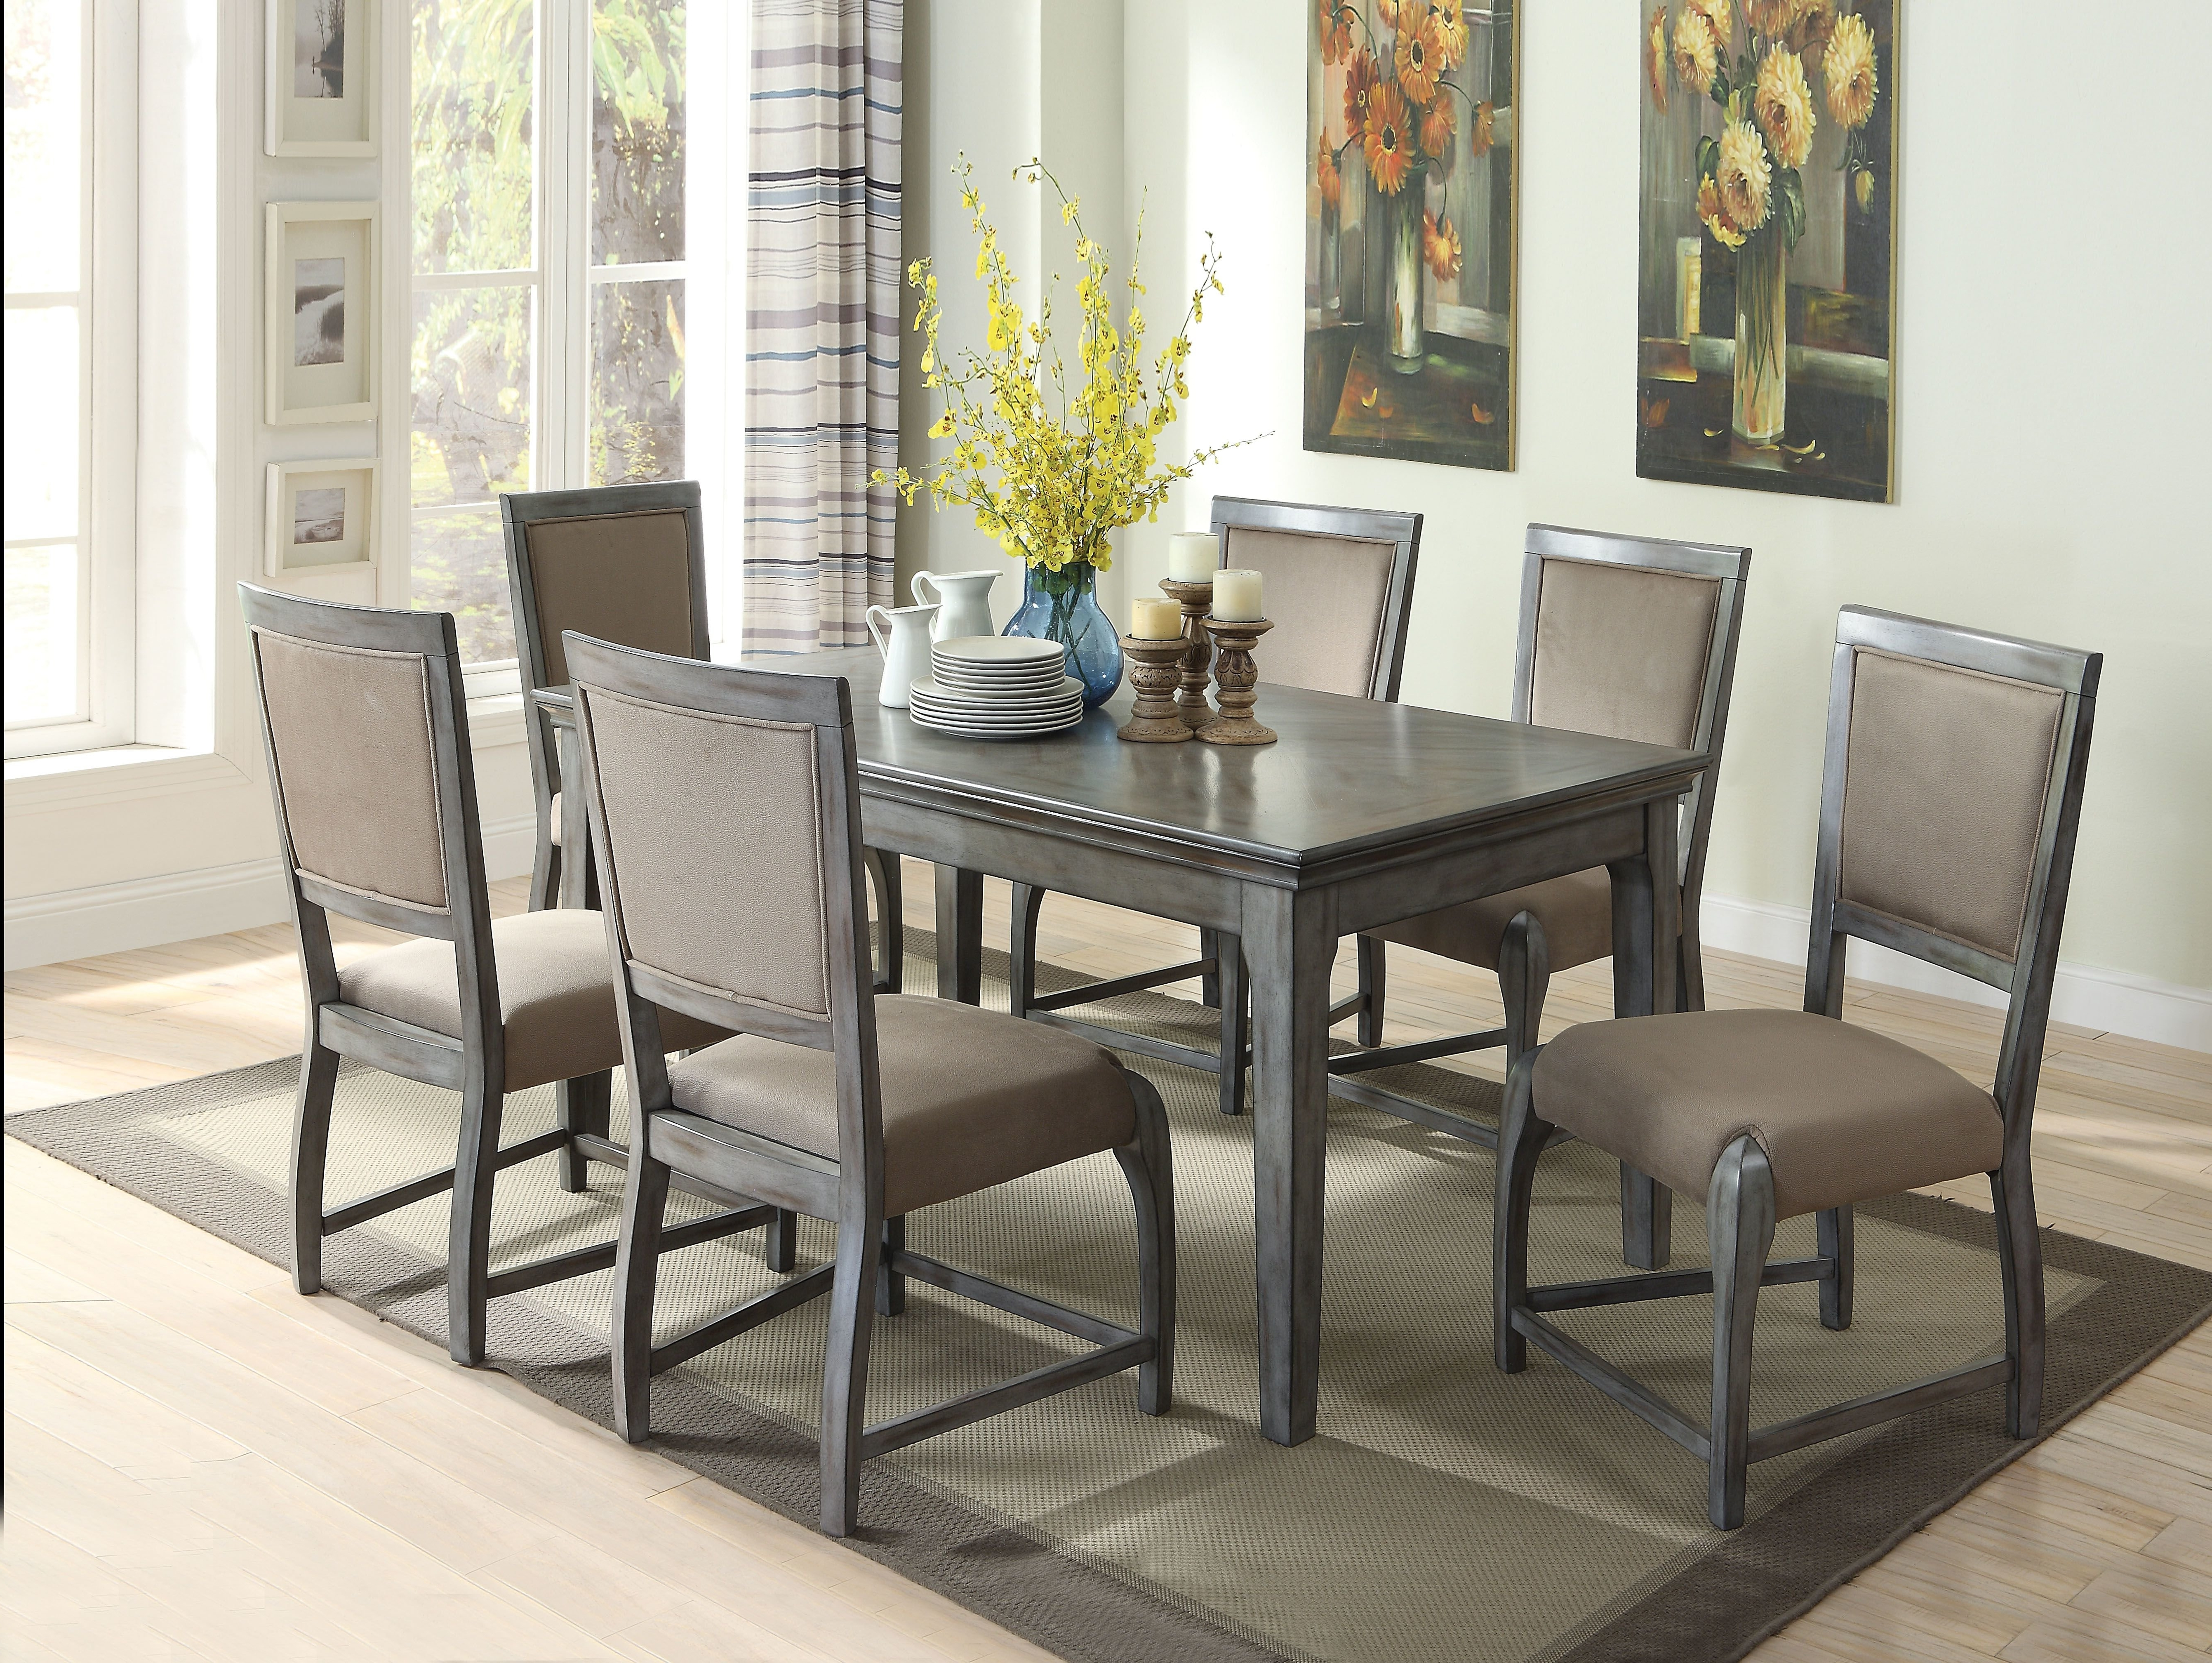 Walden 7 Piece Extension Dining Sets With Trendy Gracie Oaks Vincenza 7 Piece Dining Set (View 22 of 25)